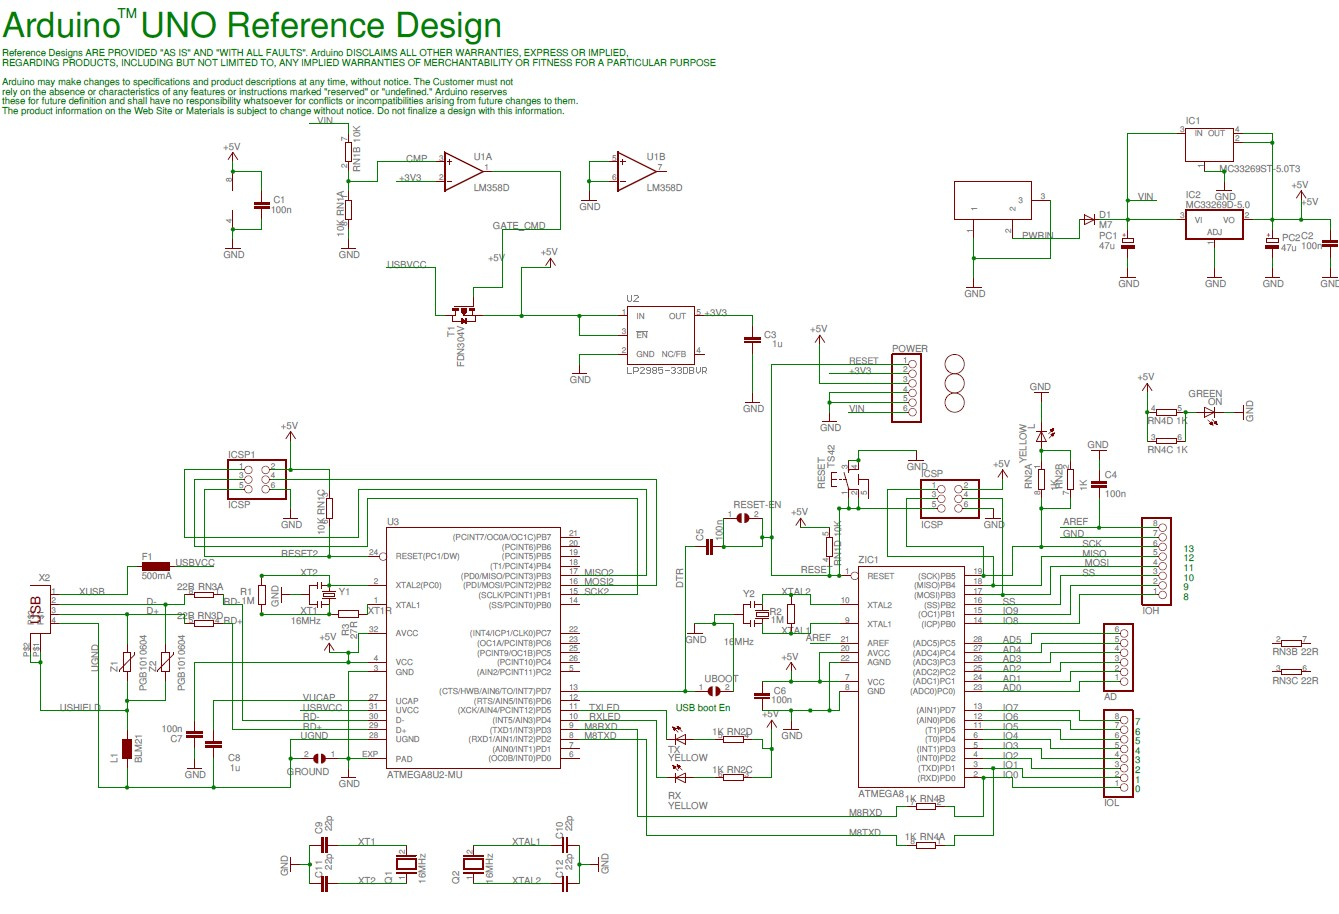 hight resolution of arduino uno schematic diagram images pictures becuo schema diagram arduino circuit page 5 microcontroller circuits next